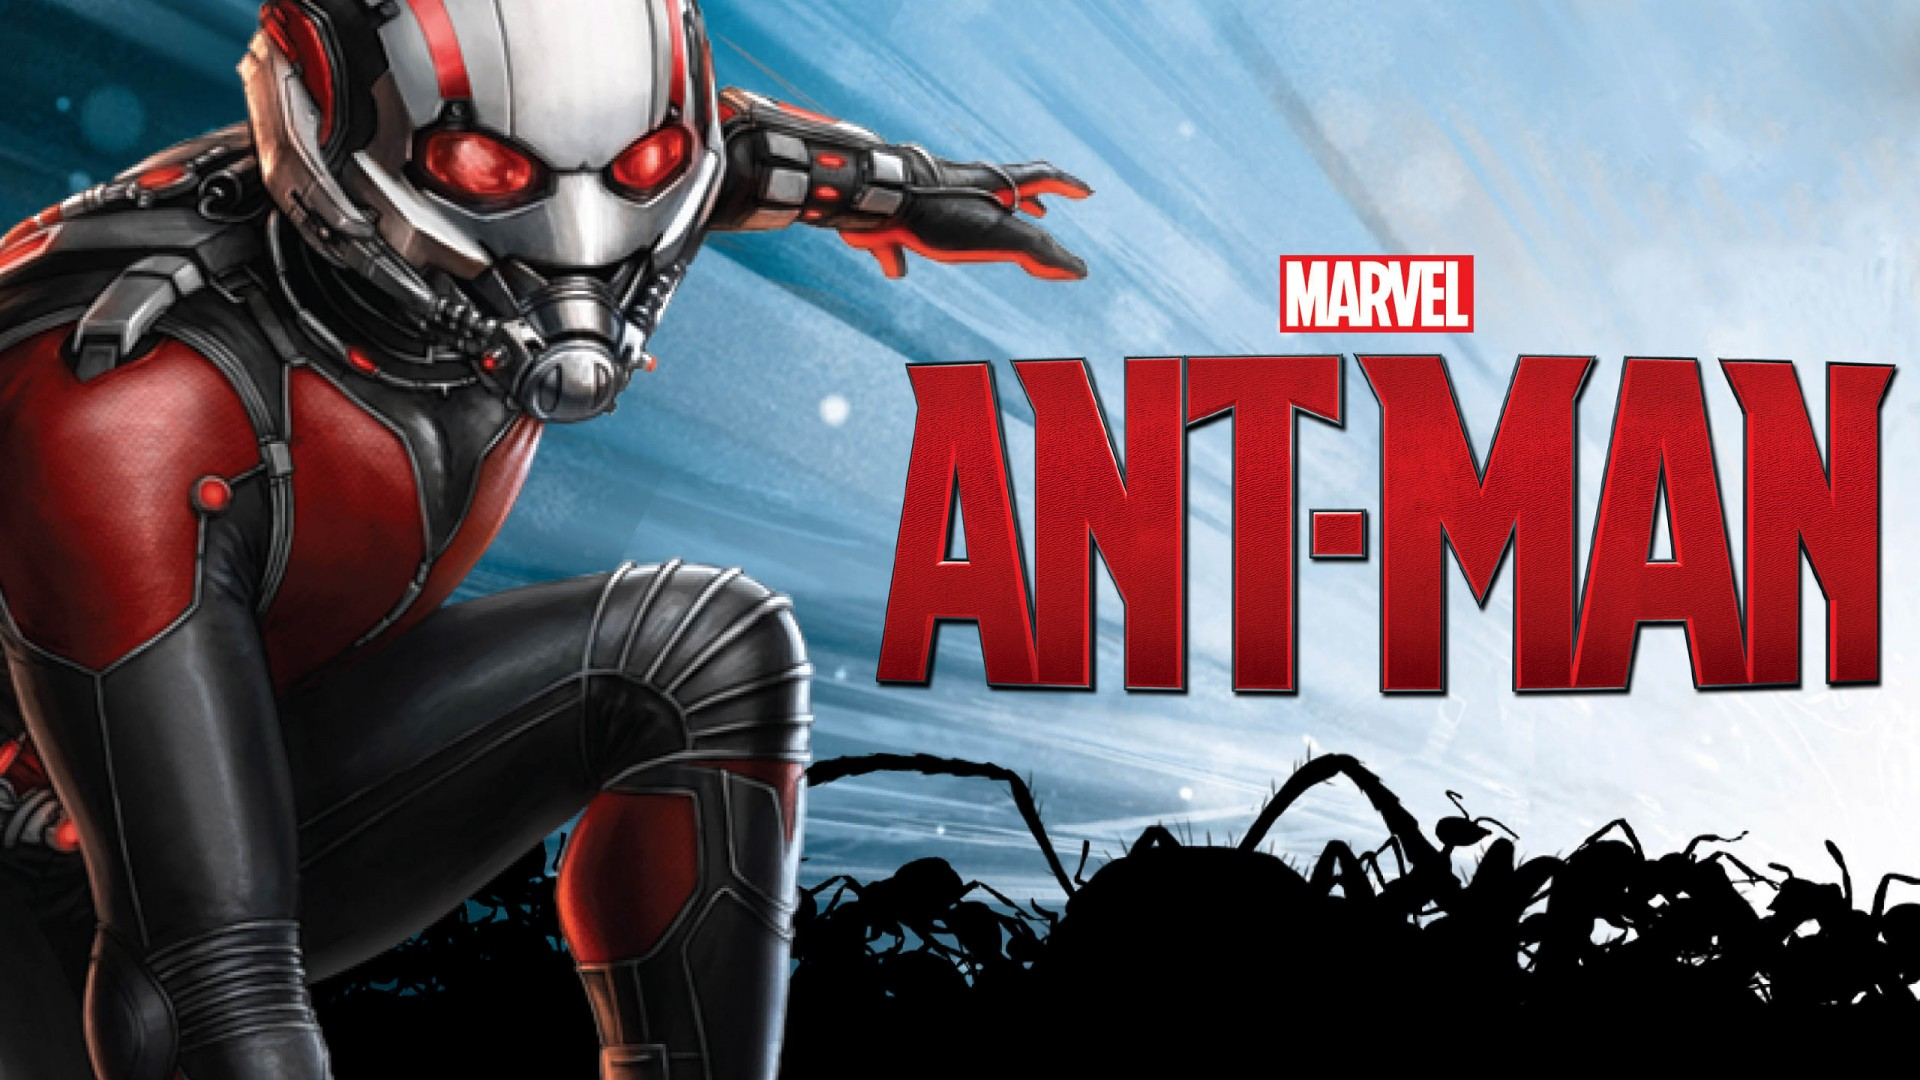 marvel ant man movie poster